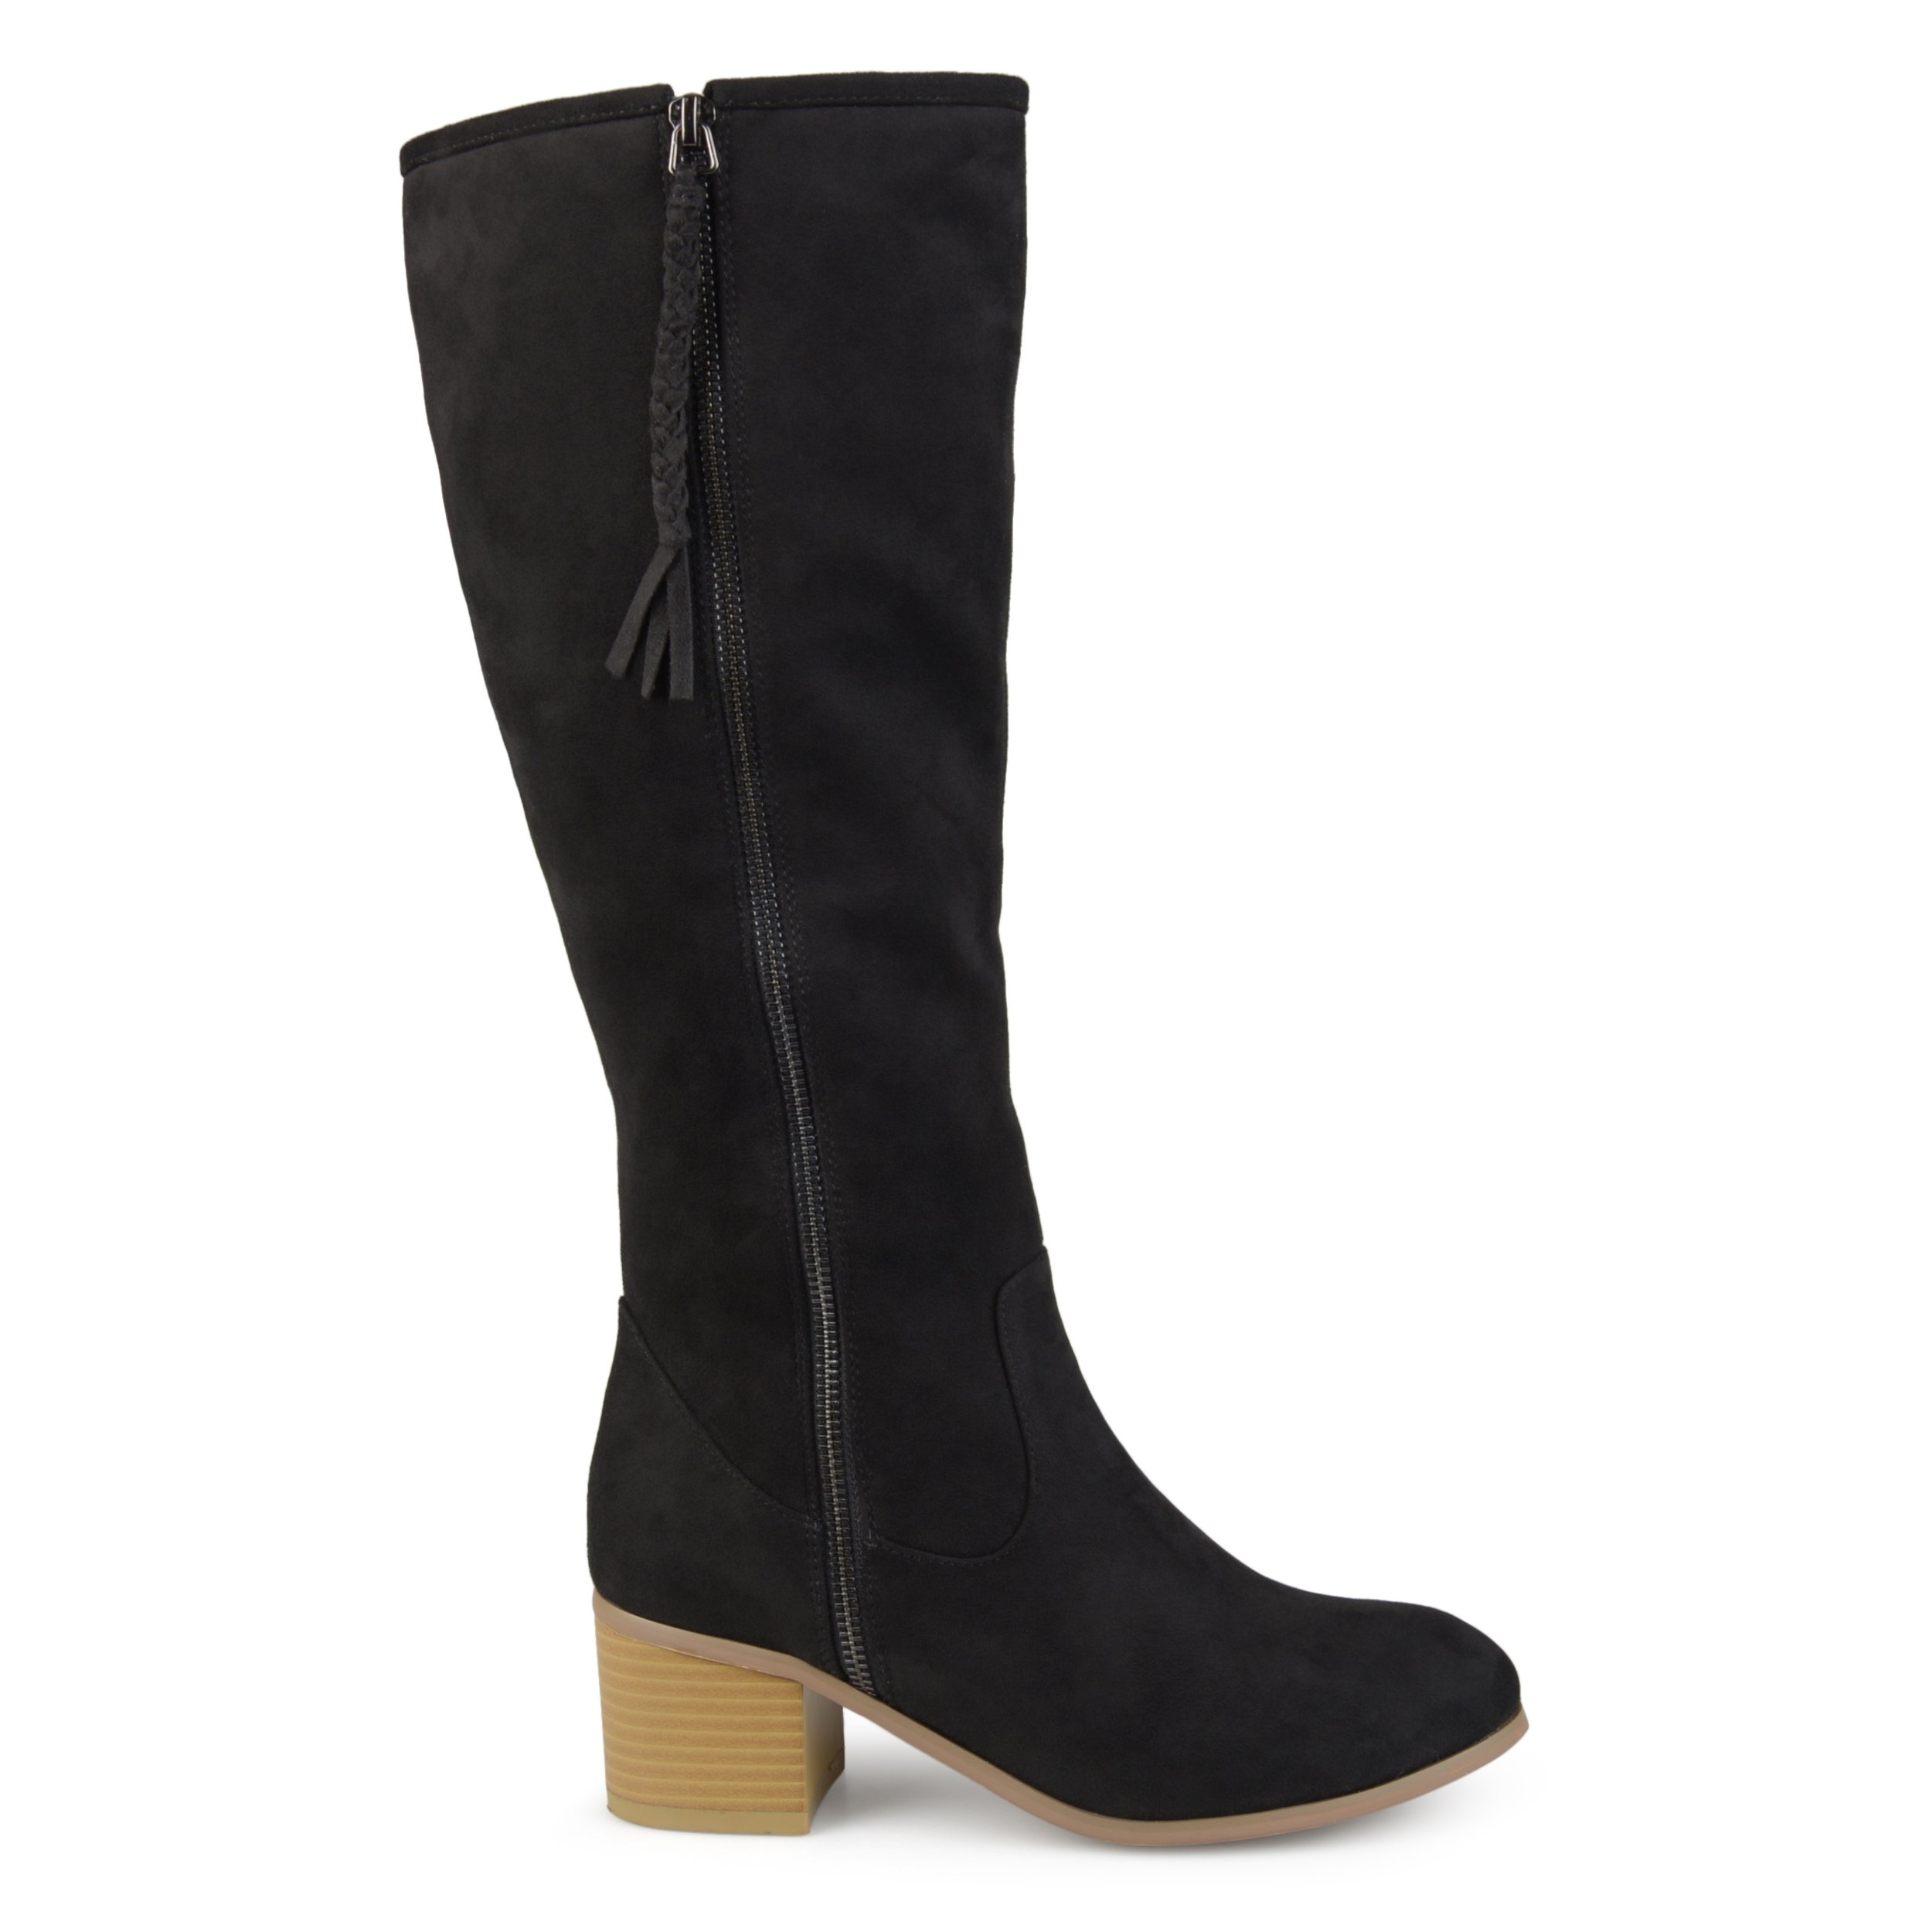 Brinley Co Womens Regular and Wide Calf Faux Suede Mid-Calf Stacked Wood Heel Boots Black, 10.5 Wide Calf US